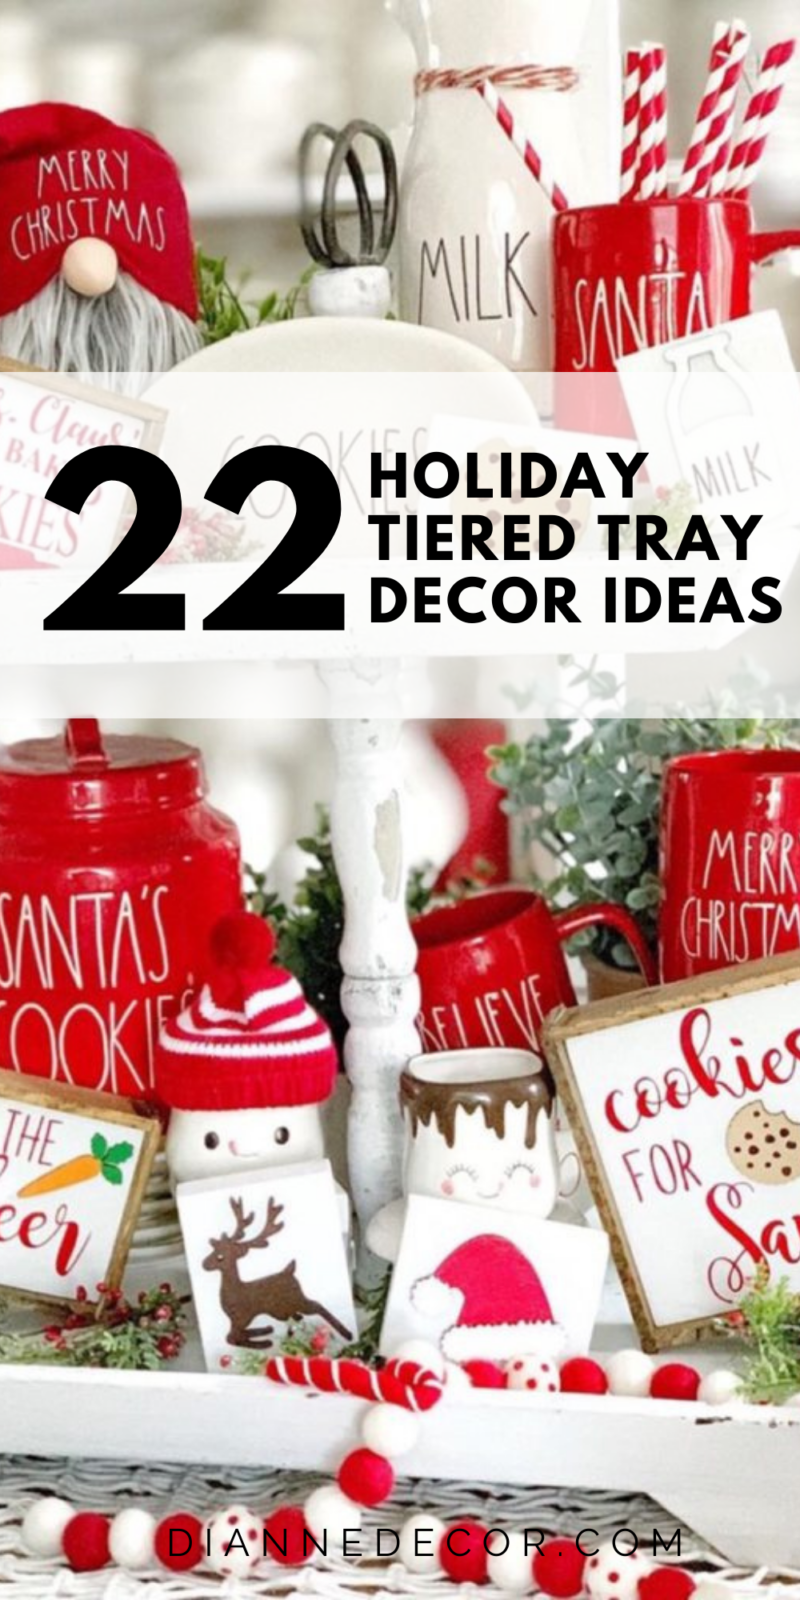 There's nothing more spectacular than over-the-top holiday tiered tray decor. Here are 23 of my favorite Christmas tiered tray displays. #holidaytieredtray #tieredtray #tieredtraydecor #homedecor #holidaydecor #decor #decoratingonabudget